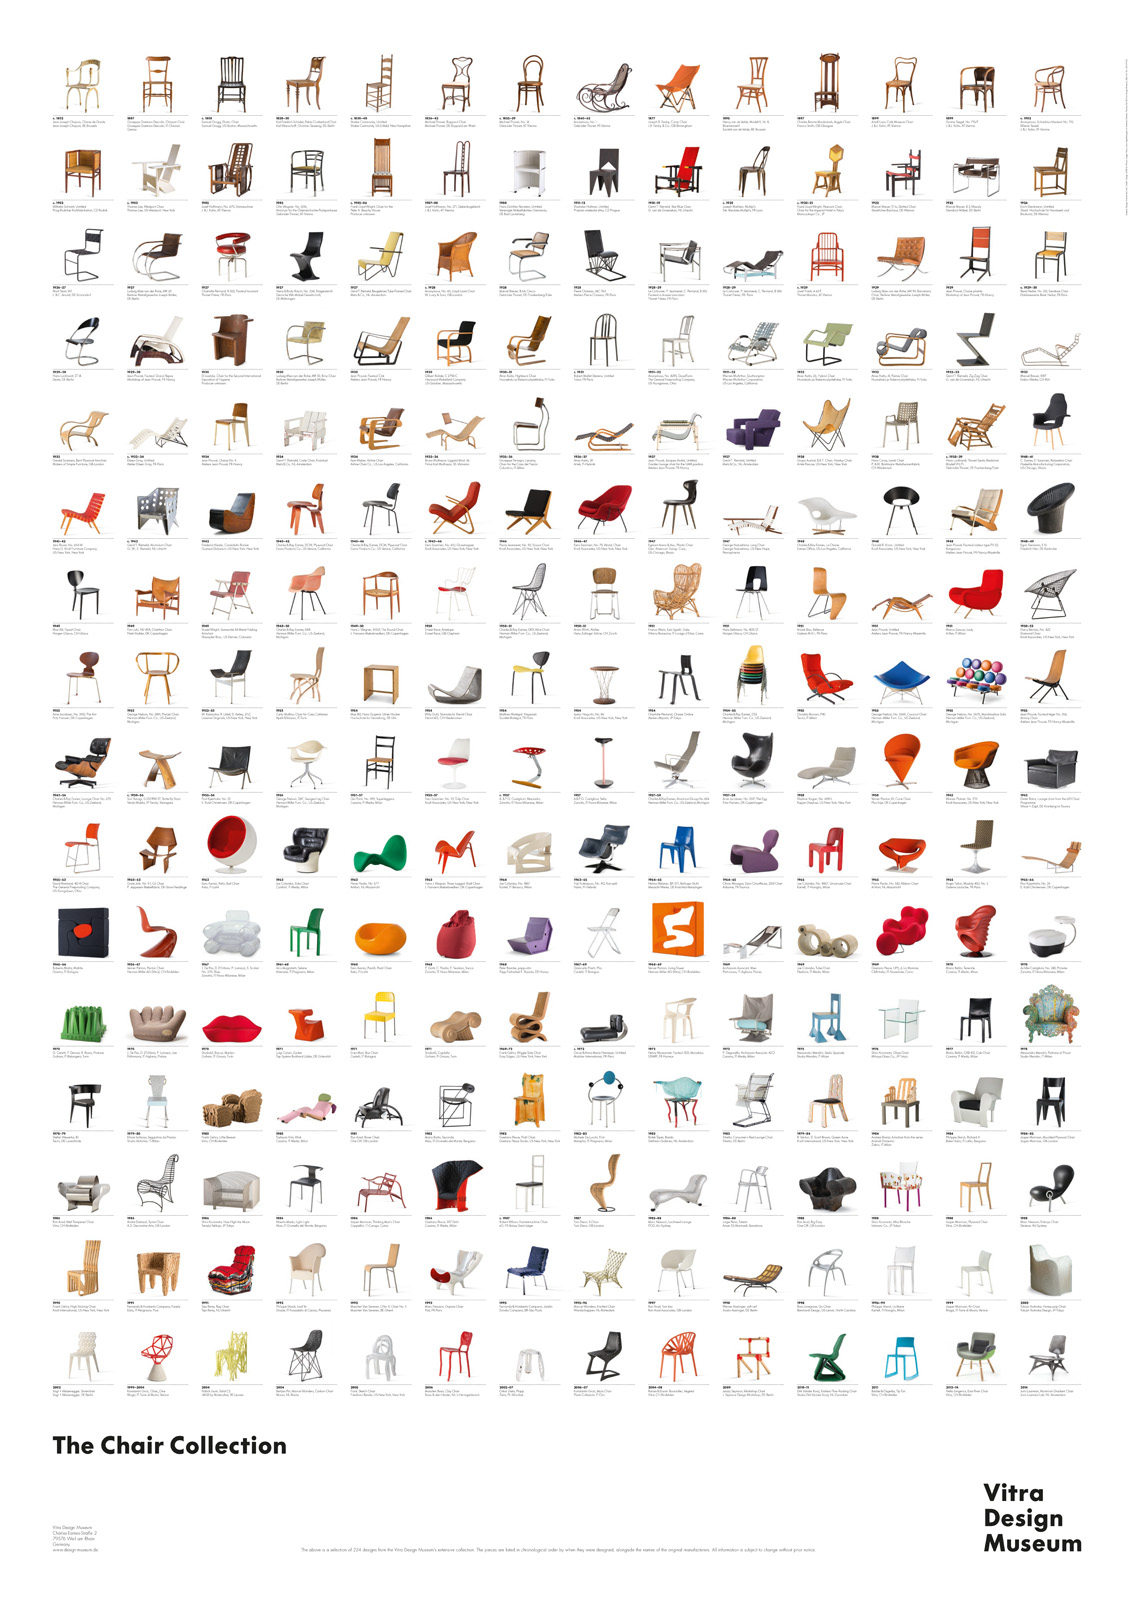 vitra_chairs-collection_poster_2018_a0_low